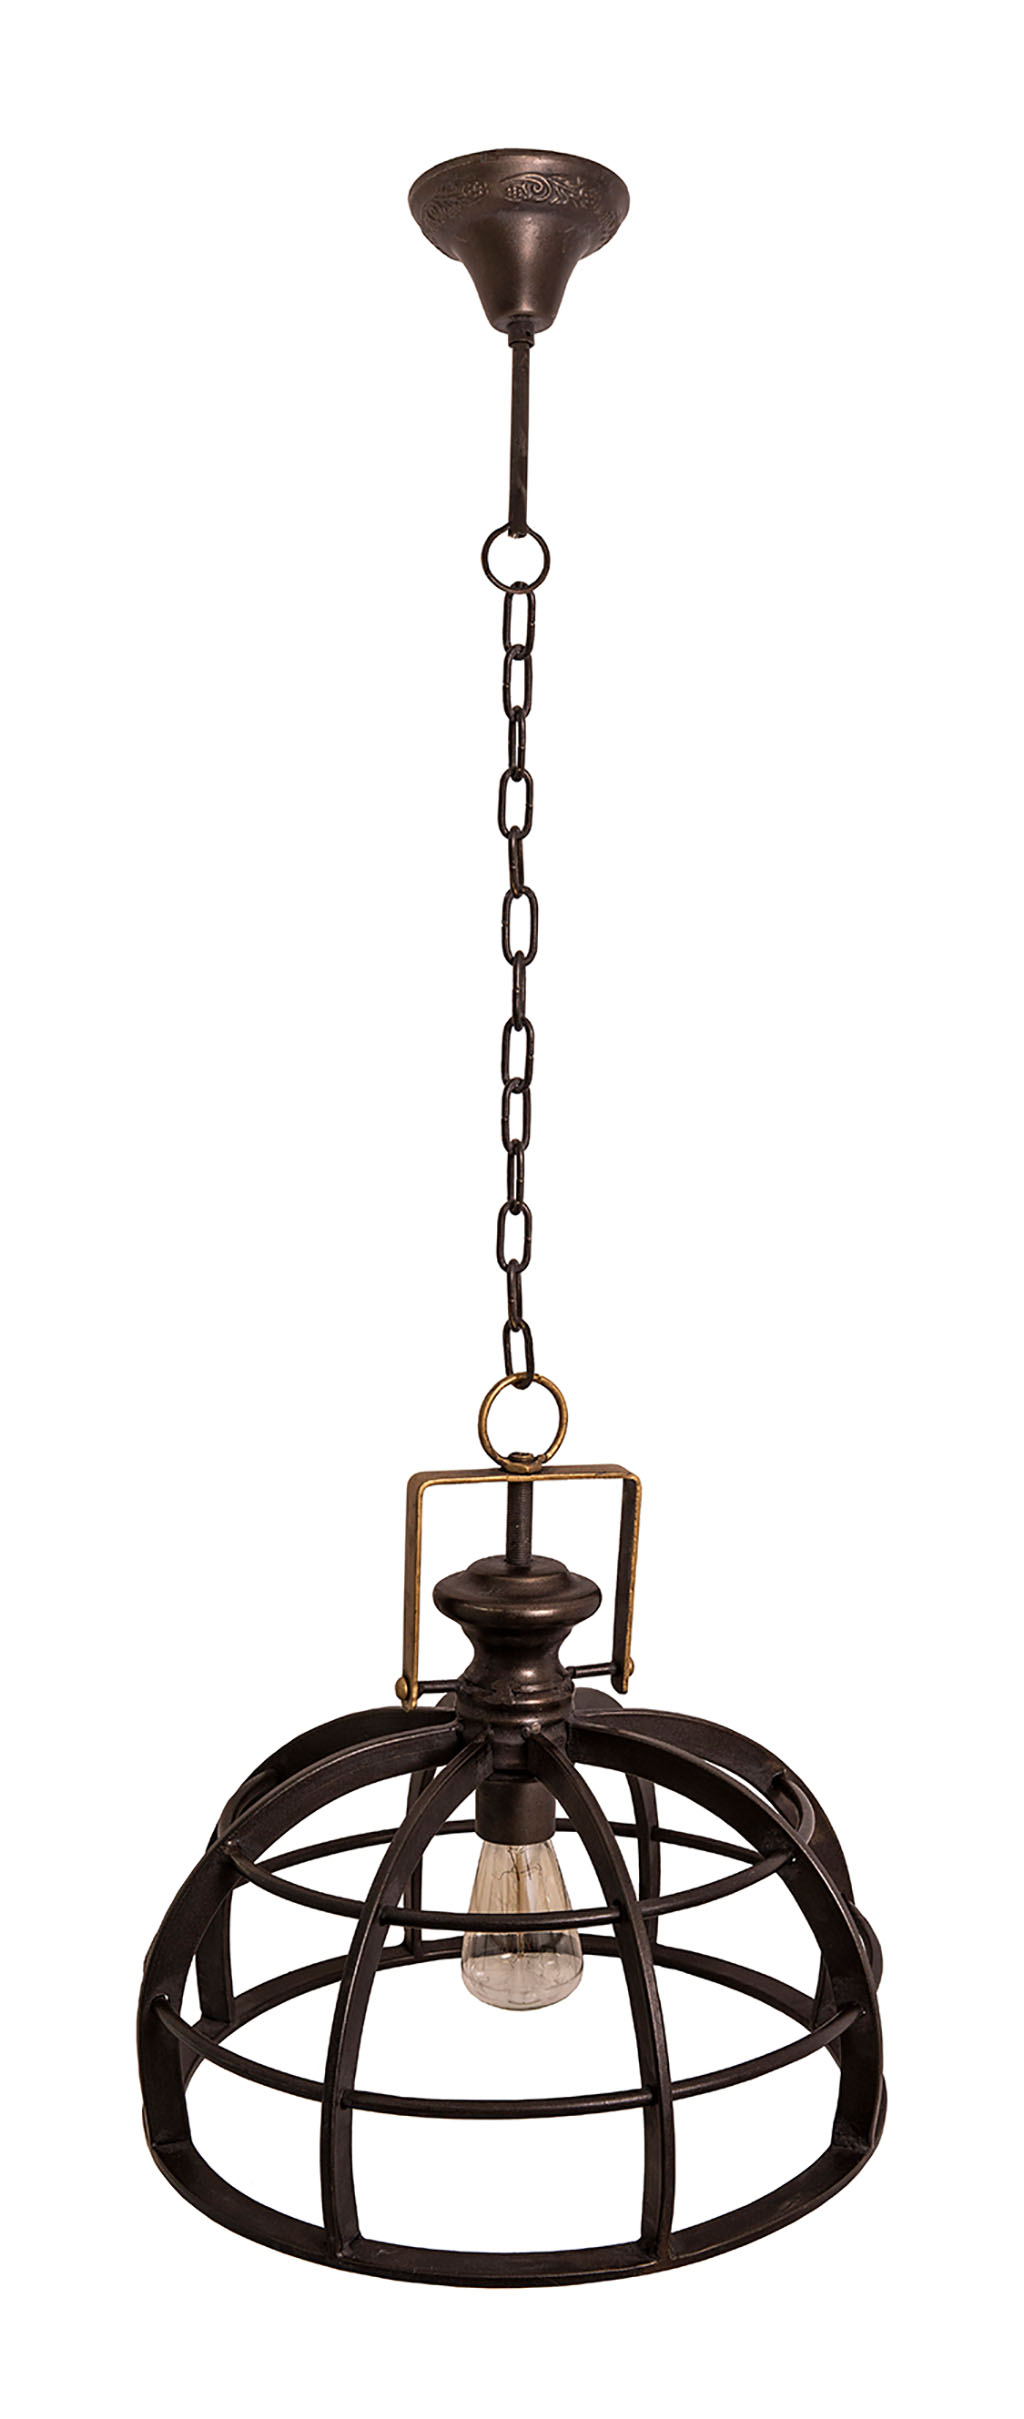 img-Suspension ajouree industrielle d29cm